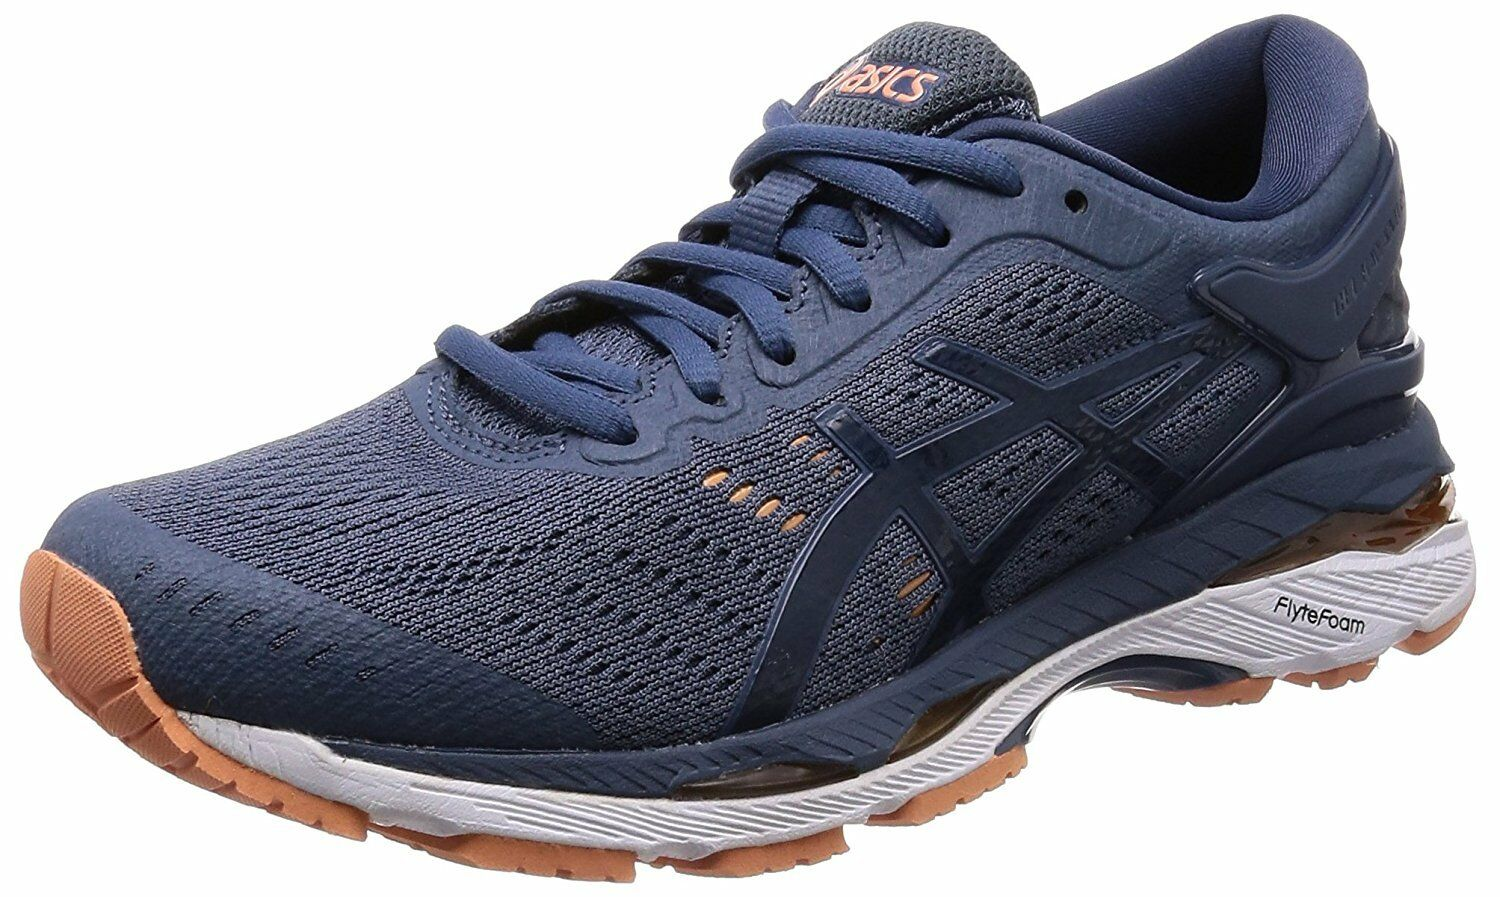 ASICS Running Shoes LADY GEL-KAYANO 24 Wide TJG759 Smoky Dark Blue US8Price reduction Seasonal clearance sale